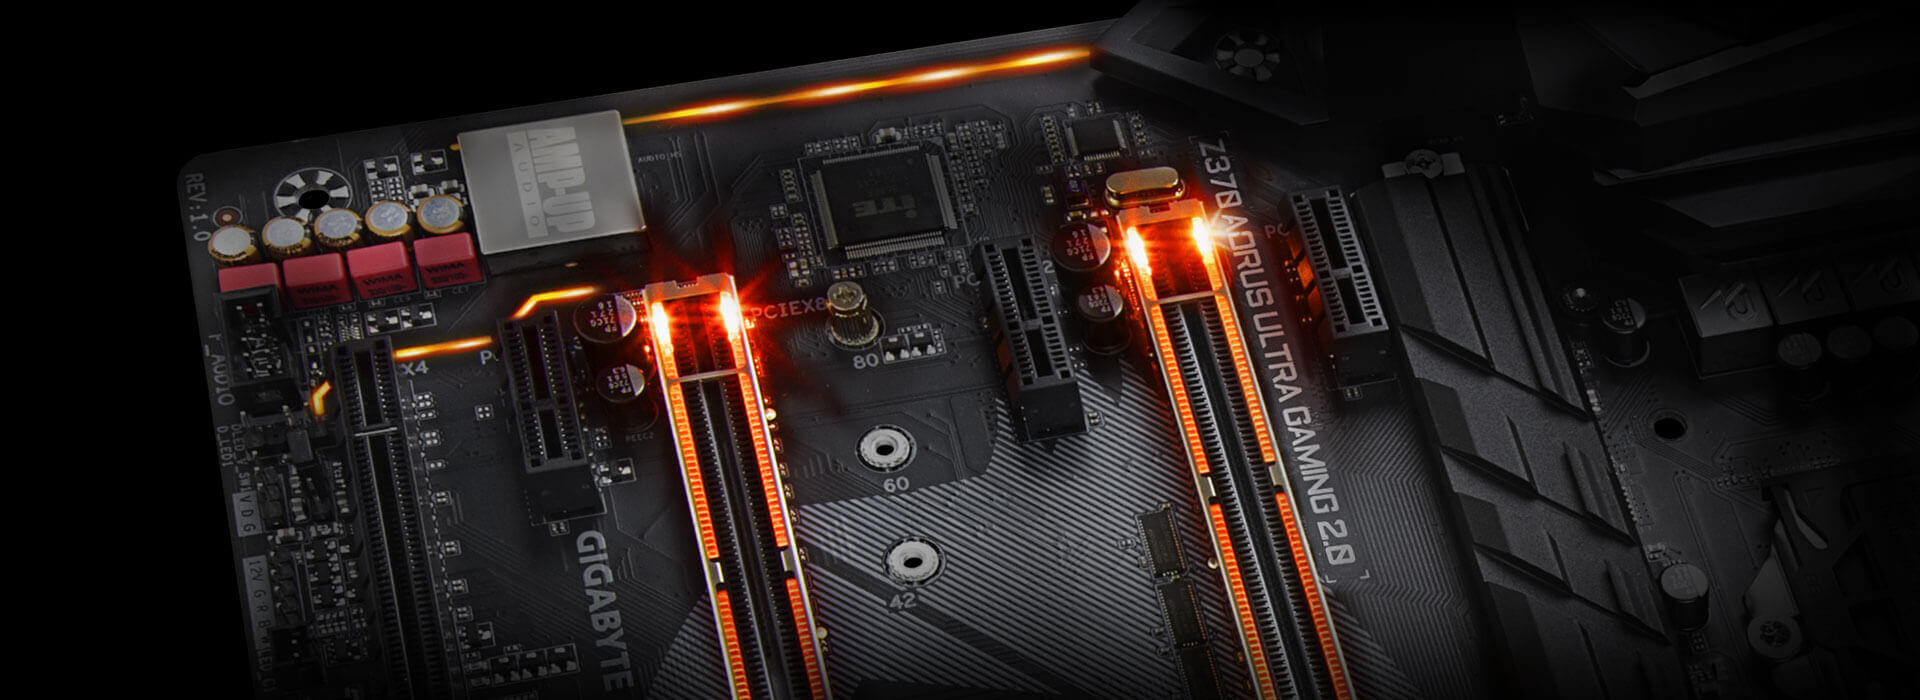 Z370 Aorus Ultra Gaming 20 Op Rev 10 Mainboards Gigabyte Circuit With It39s Own Color That Way I Have An Overlay Of Each Namely The Memory Audio Pci Express And Swappable For Accent Led When Its All Set Done Your System Will Shine Like Never Before